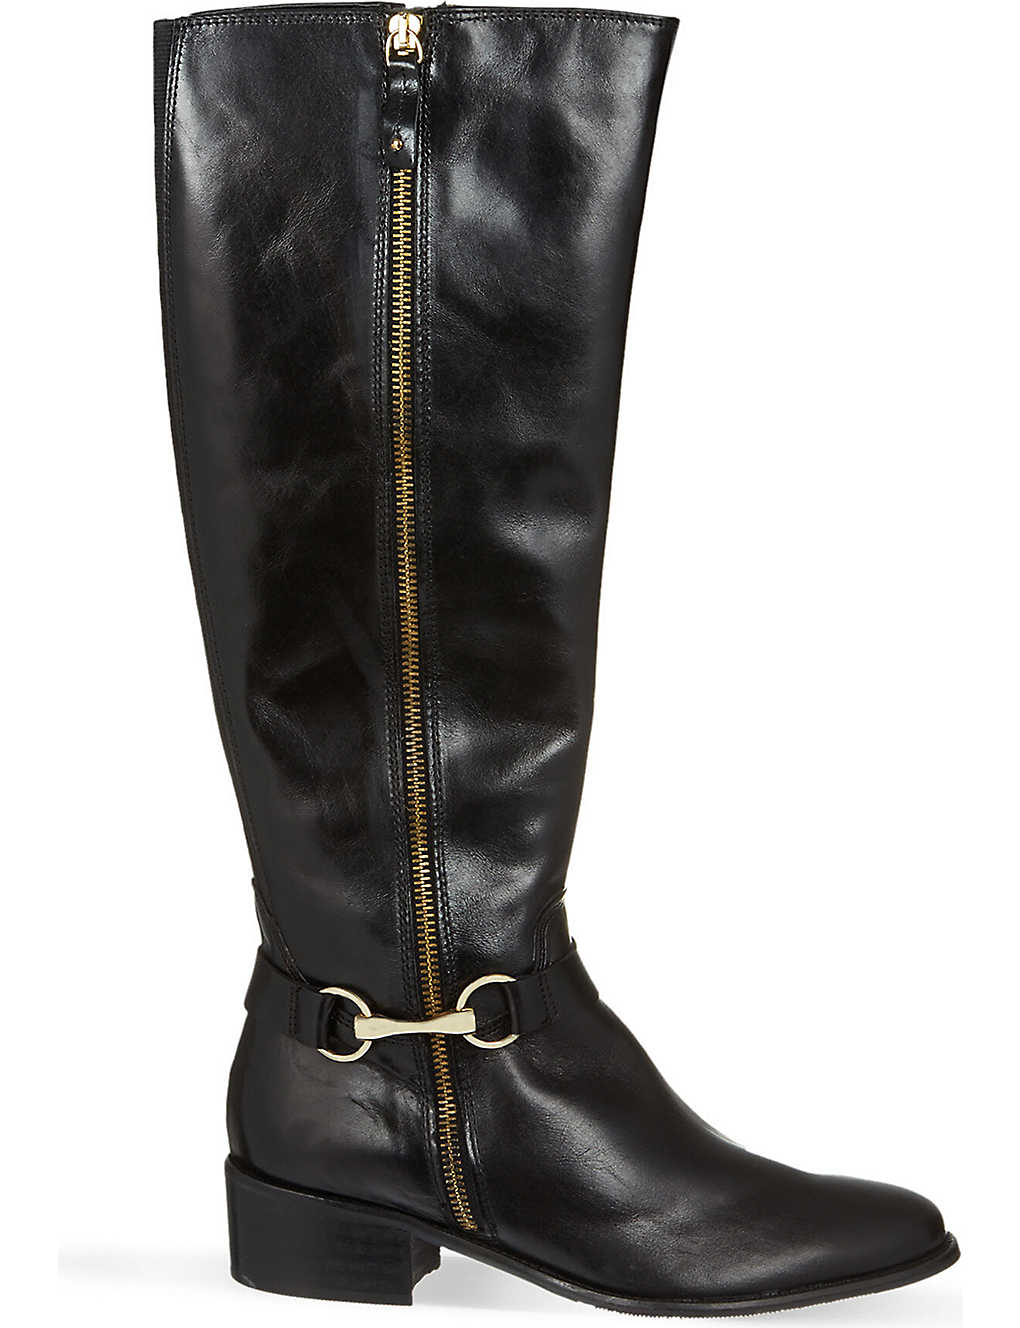 0a29c9198f9 Waffle knee-high boots